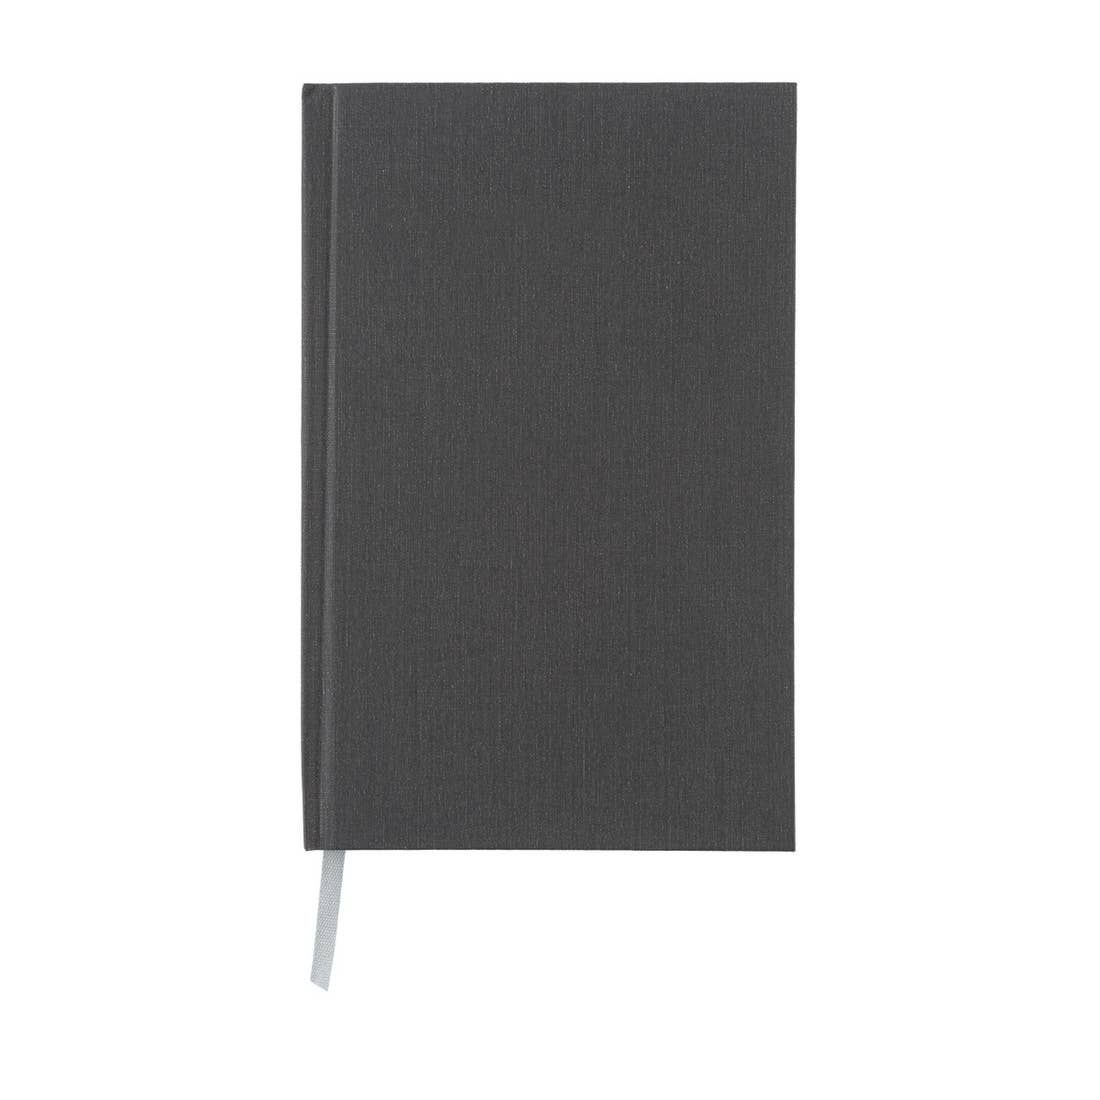 Appointed Undated Year Task Book - Charcoal